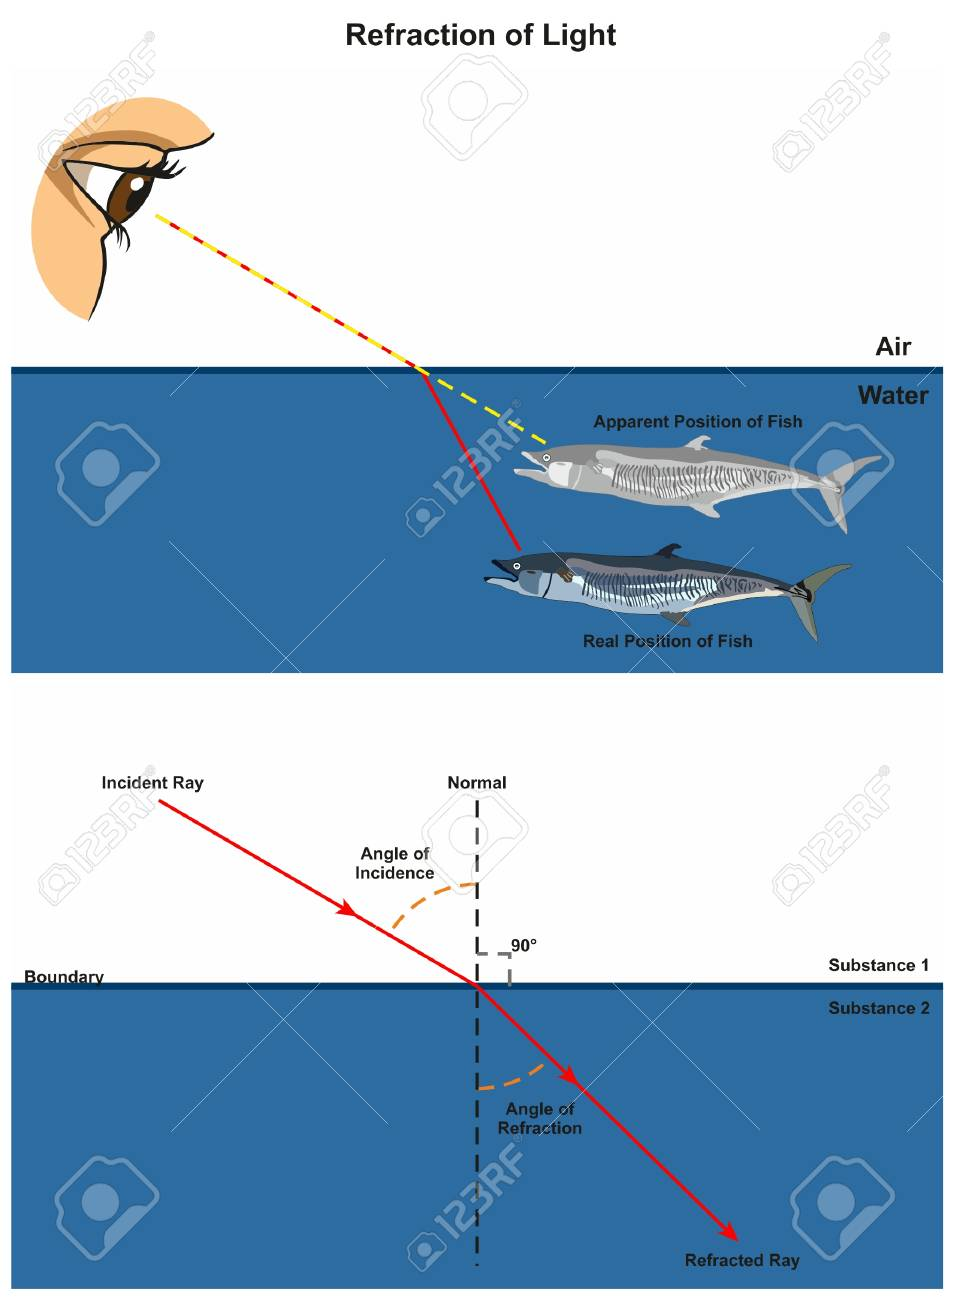 medium resolution of refraction of light infographic diagram with an example of human eye looking into fish in water